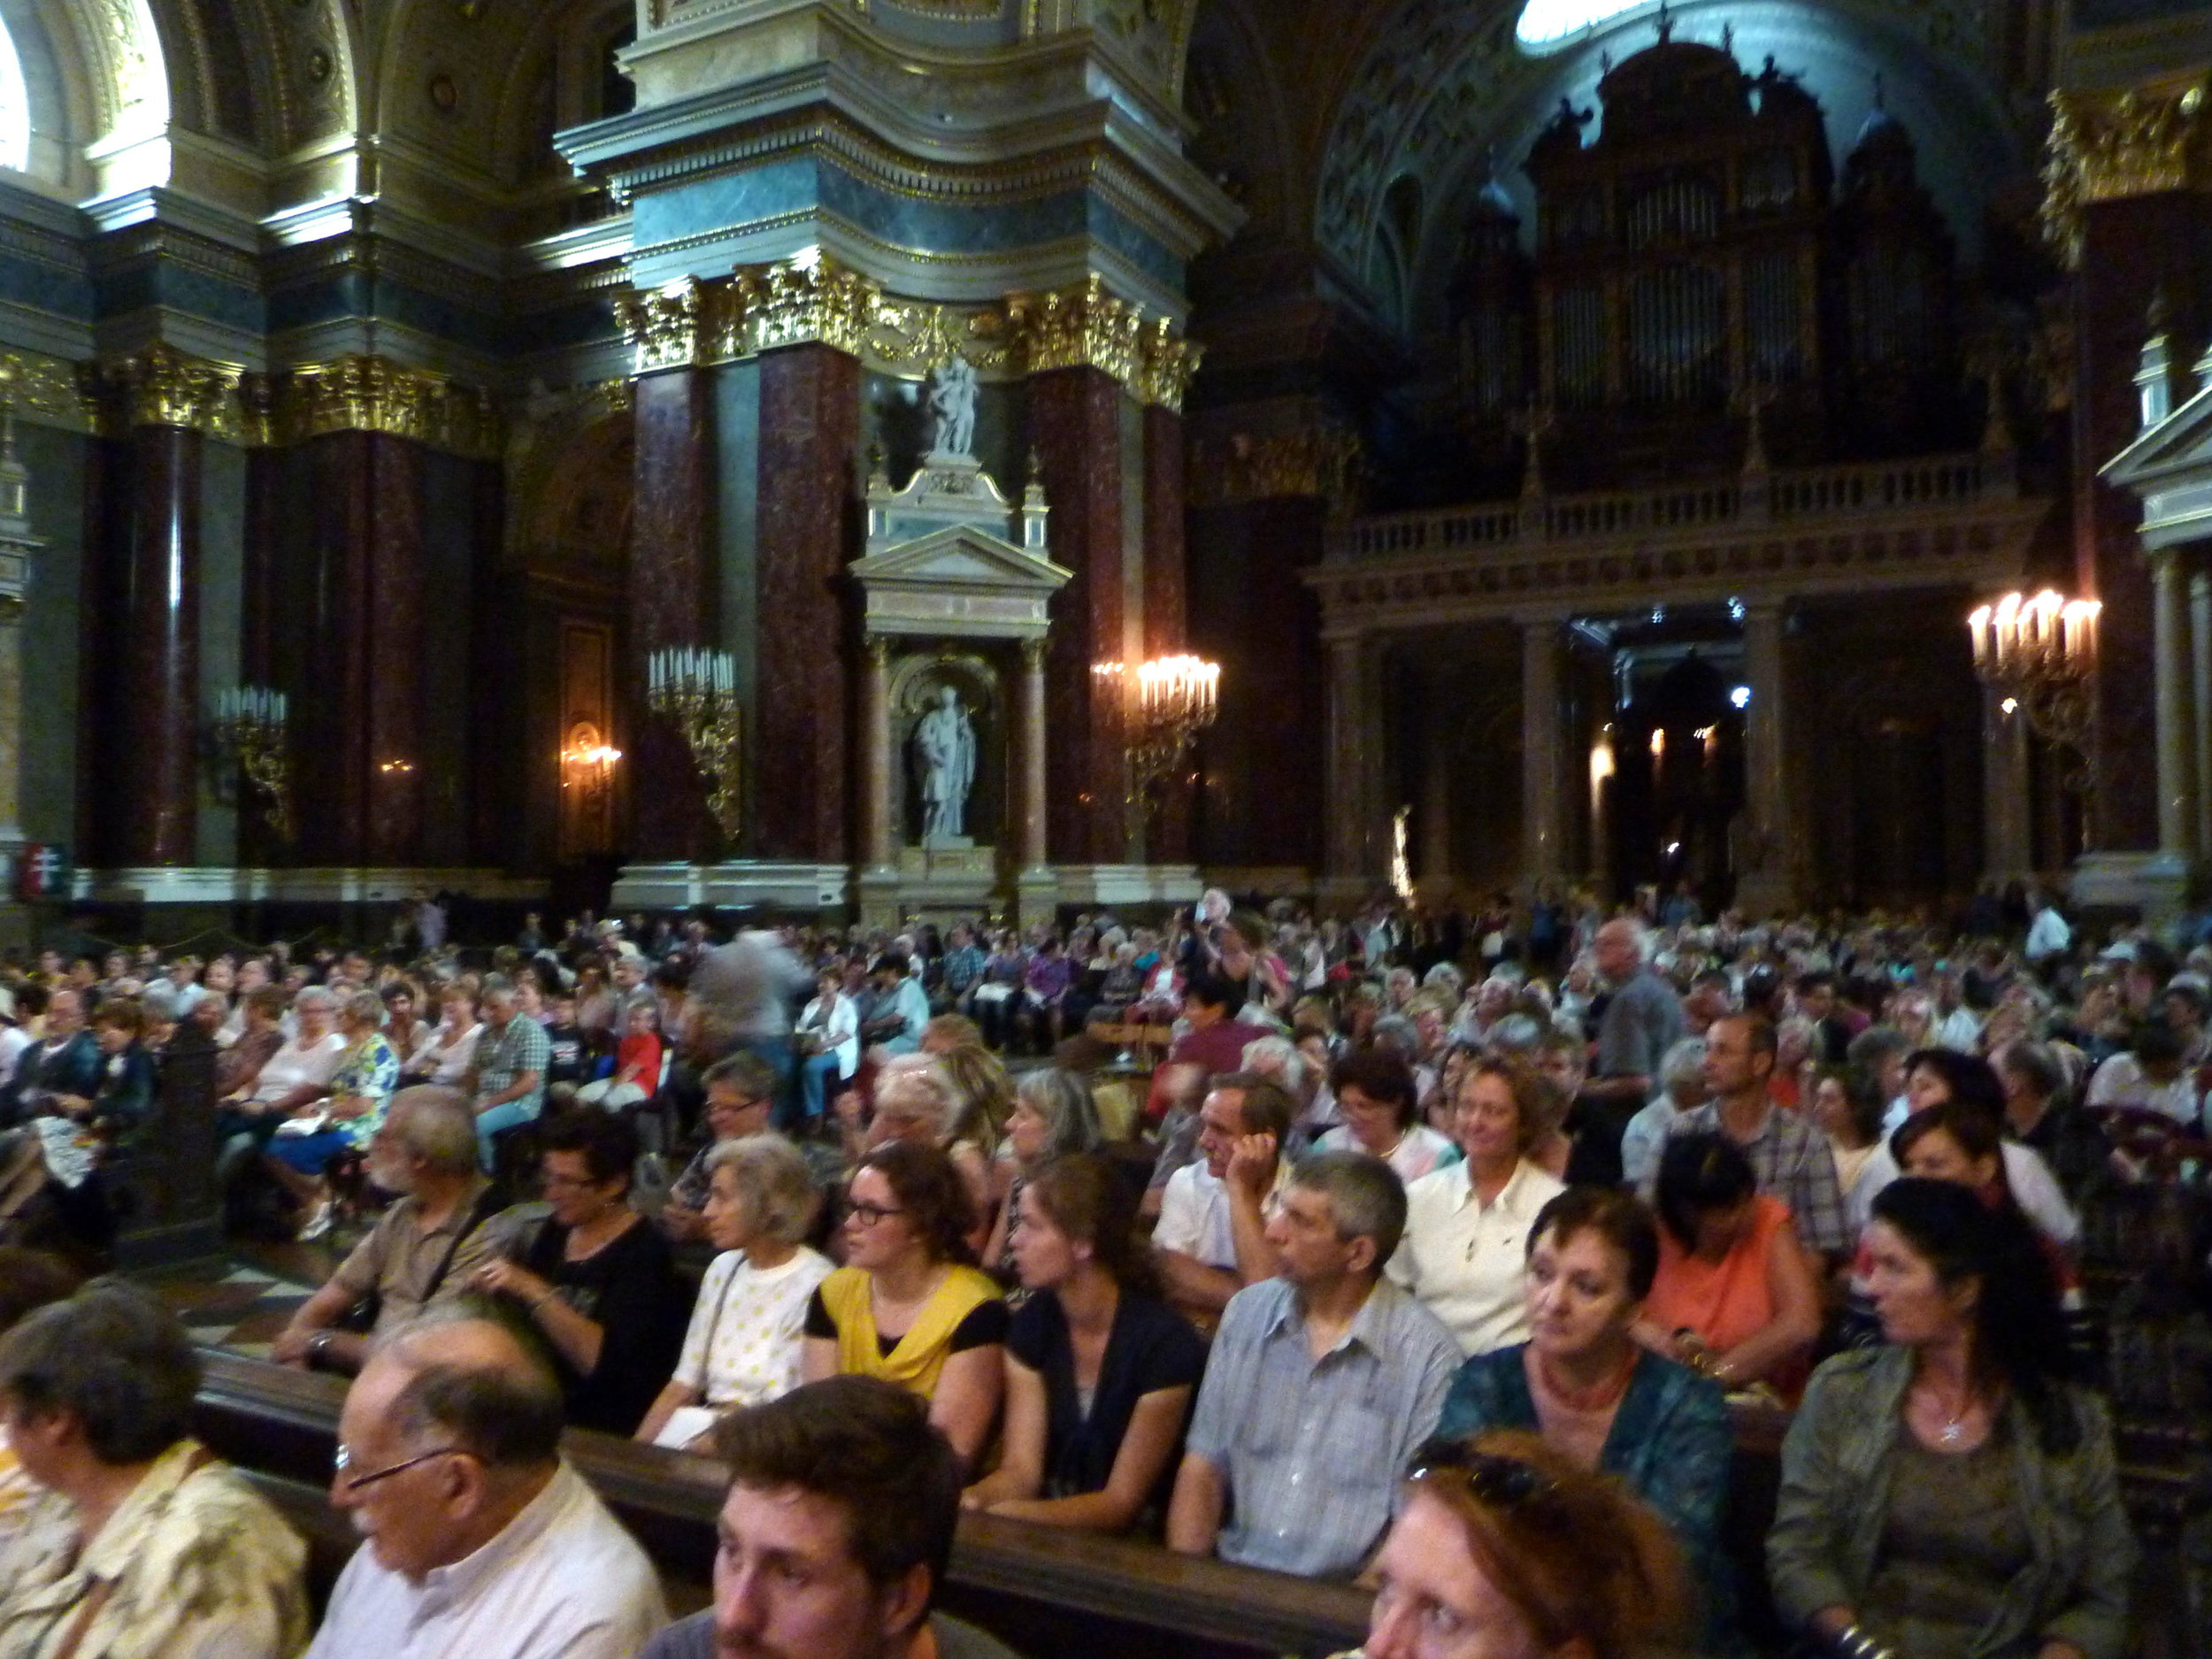 Audience is arriving for Metropolitan Flute Orchestra concert at St. Stephen's Basilica in Budapest, Hungary